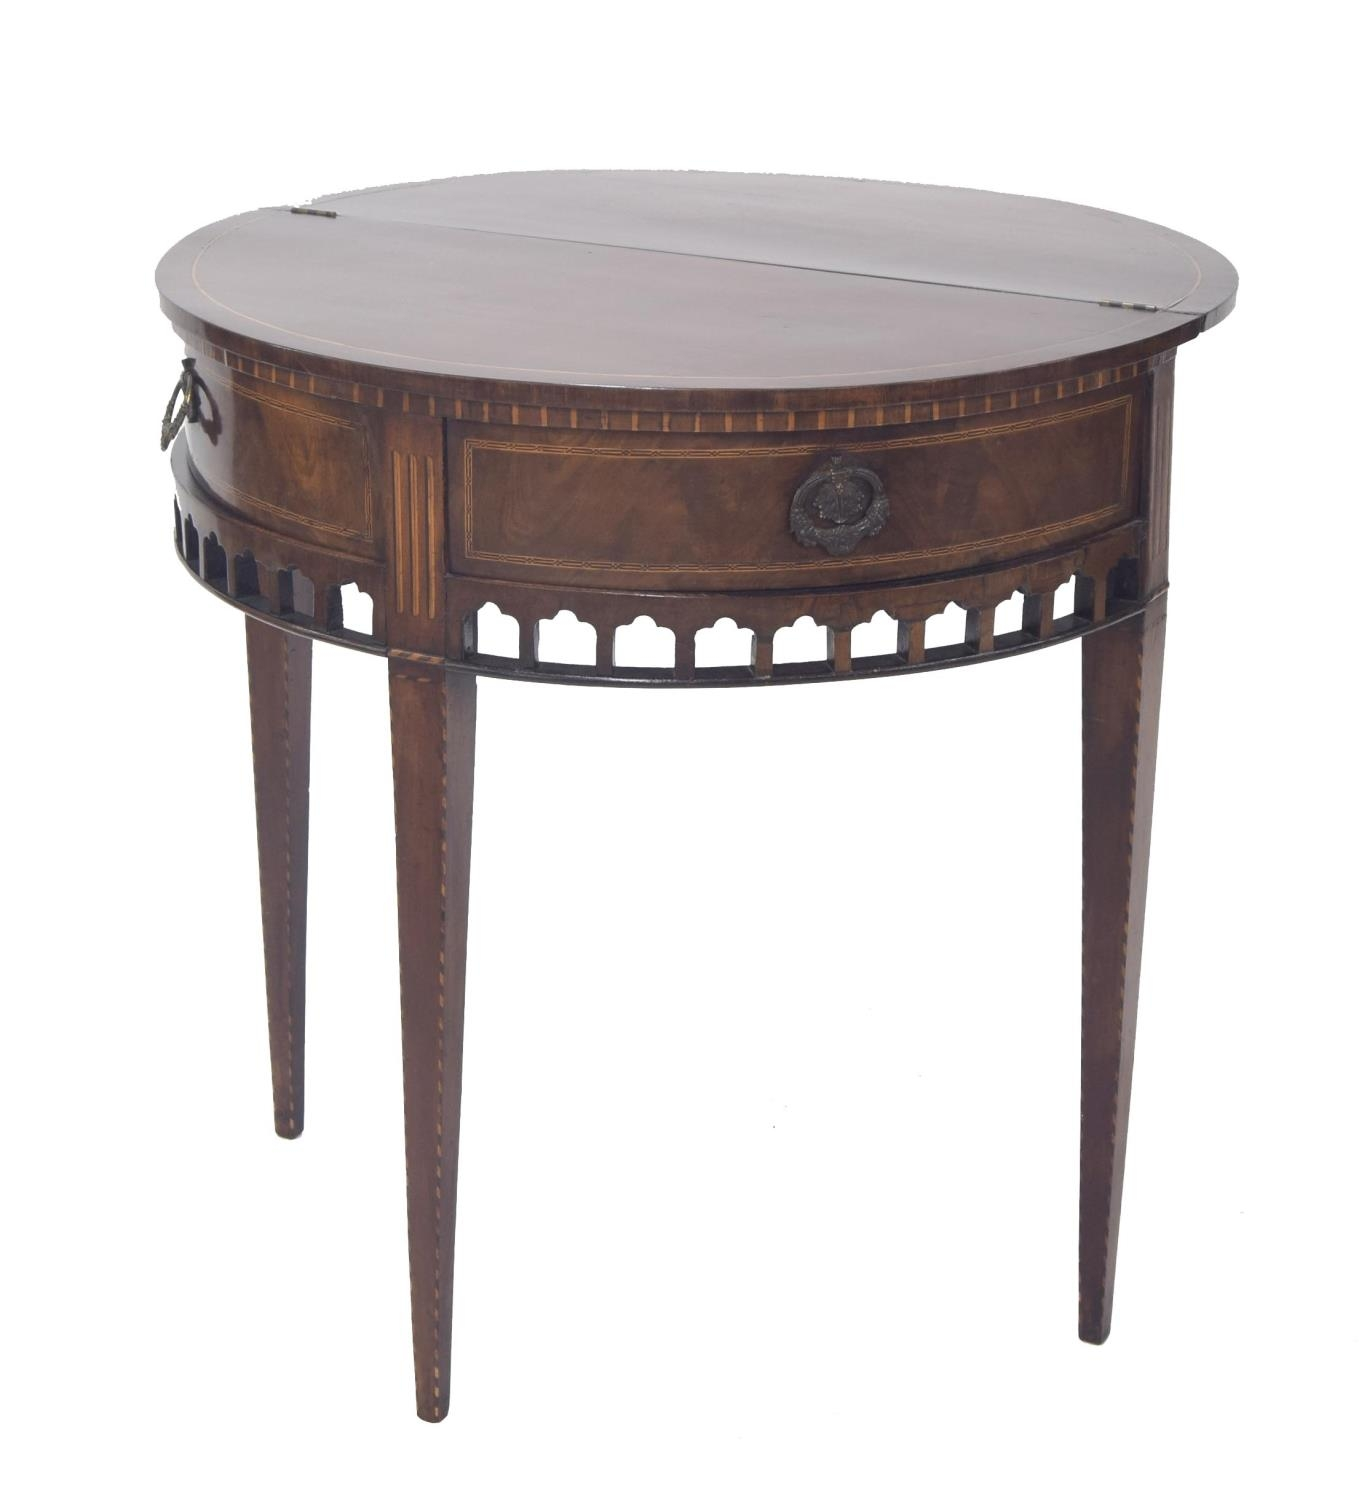 Dutch 19th century mahogany inlaid demi-lune fold-over tea table, the hinged top above a pull-out